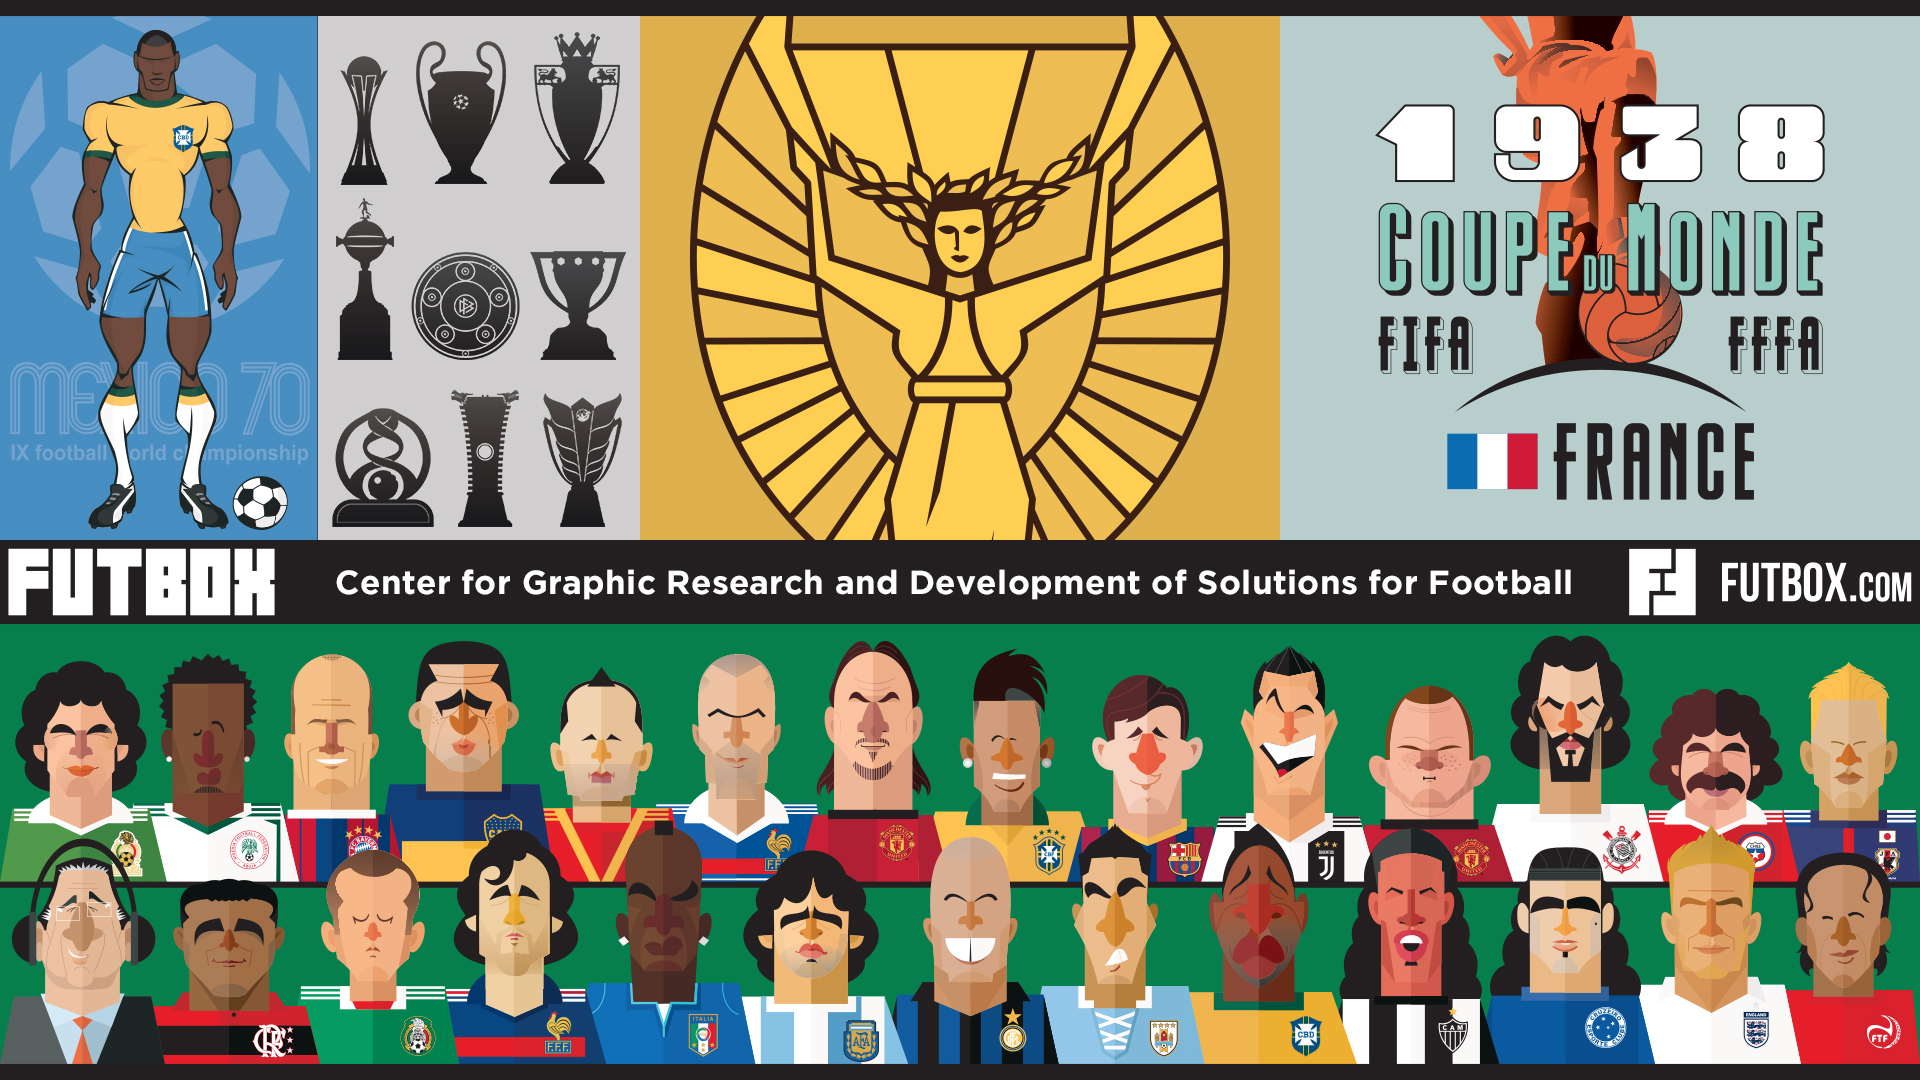 Futbox - The world's largest collection of football illustrations